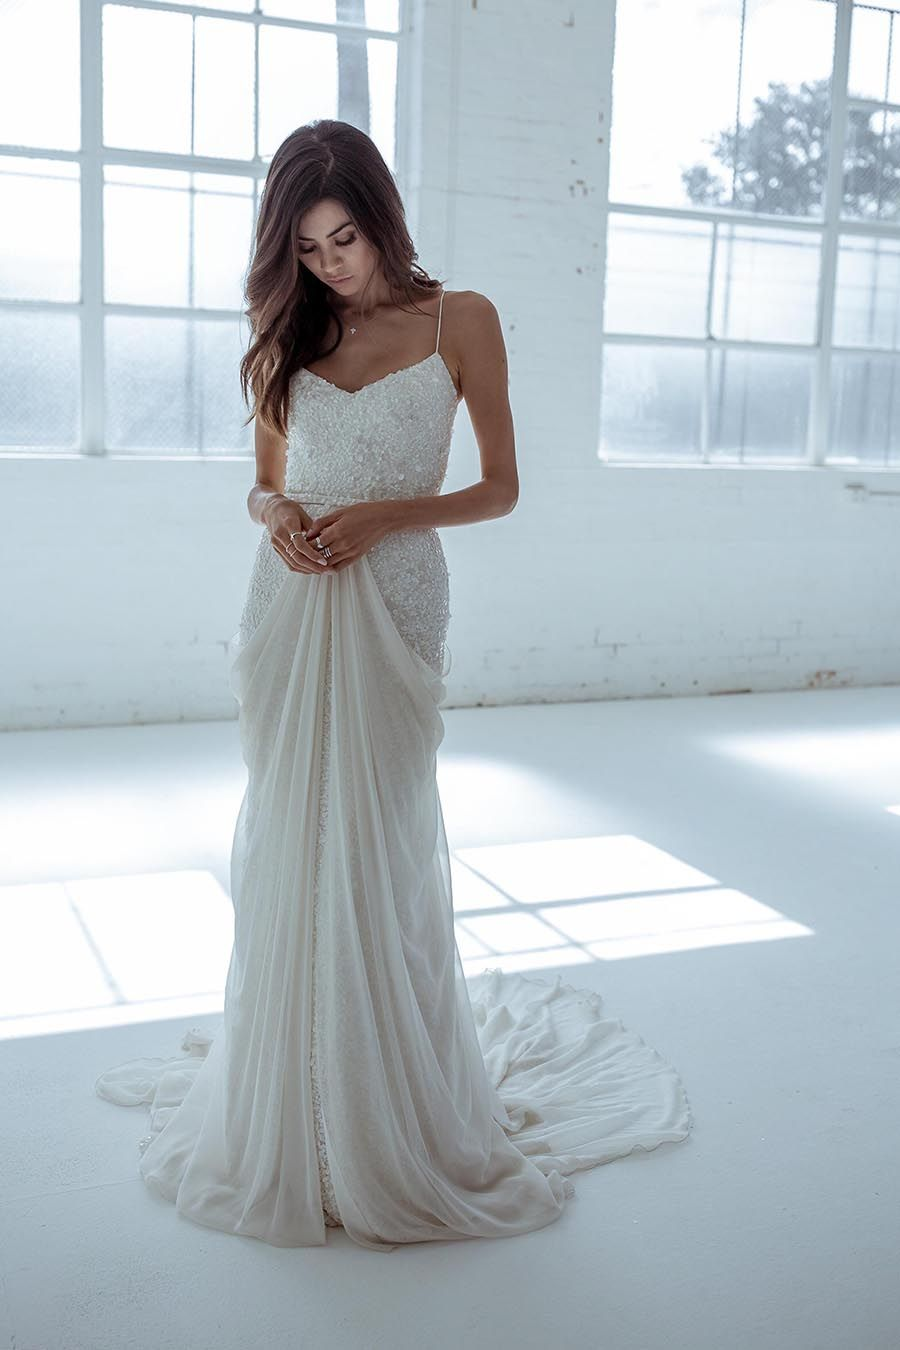 12 Stunning Wedding Dresses for Non-Traditional Singapore Brides ...